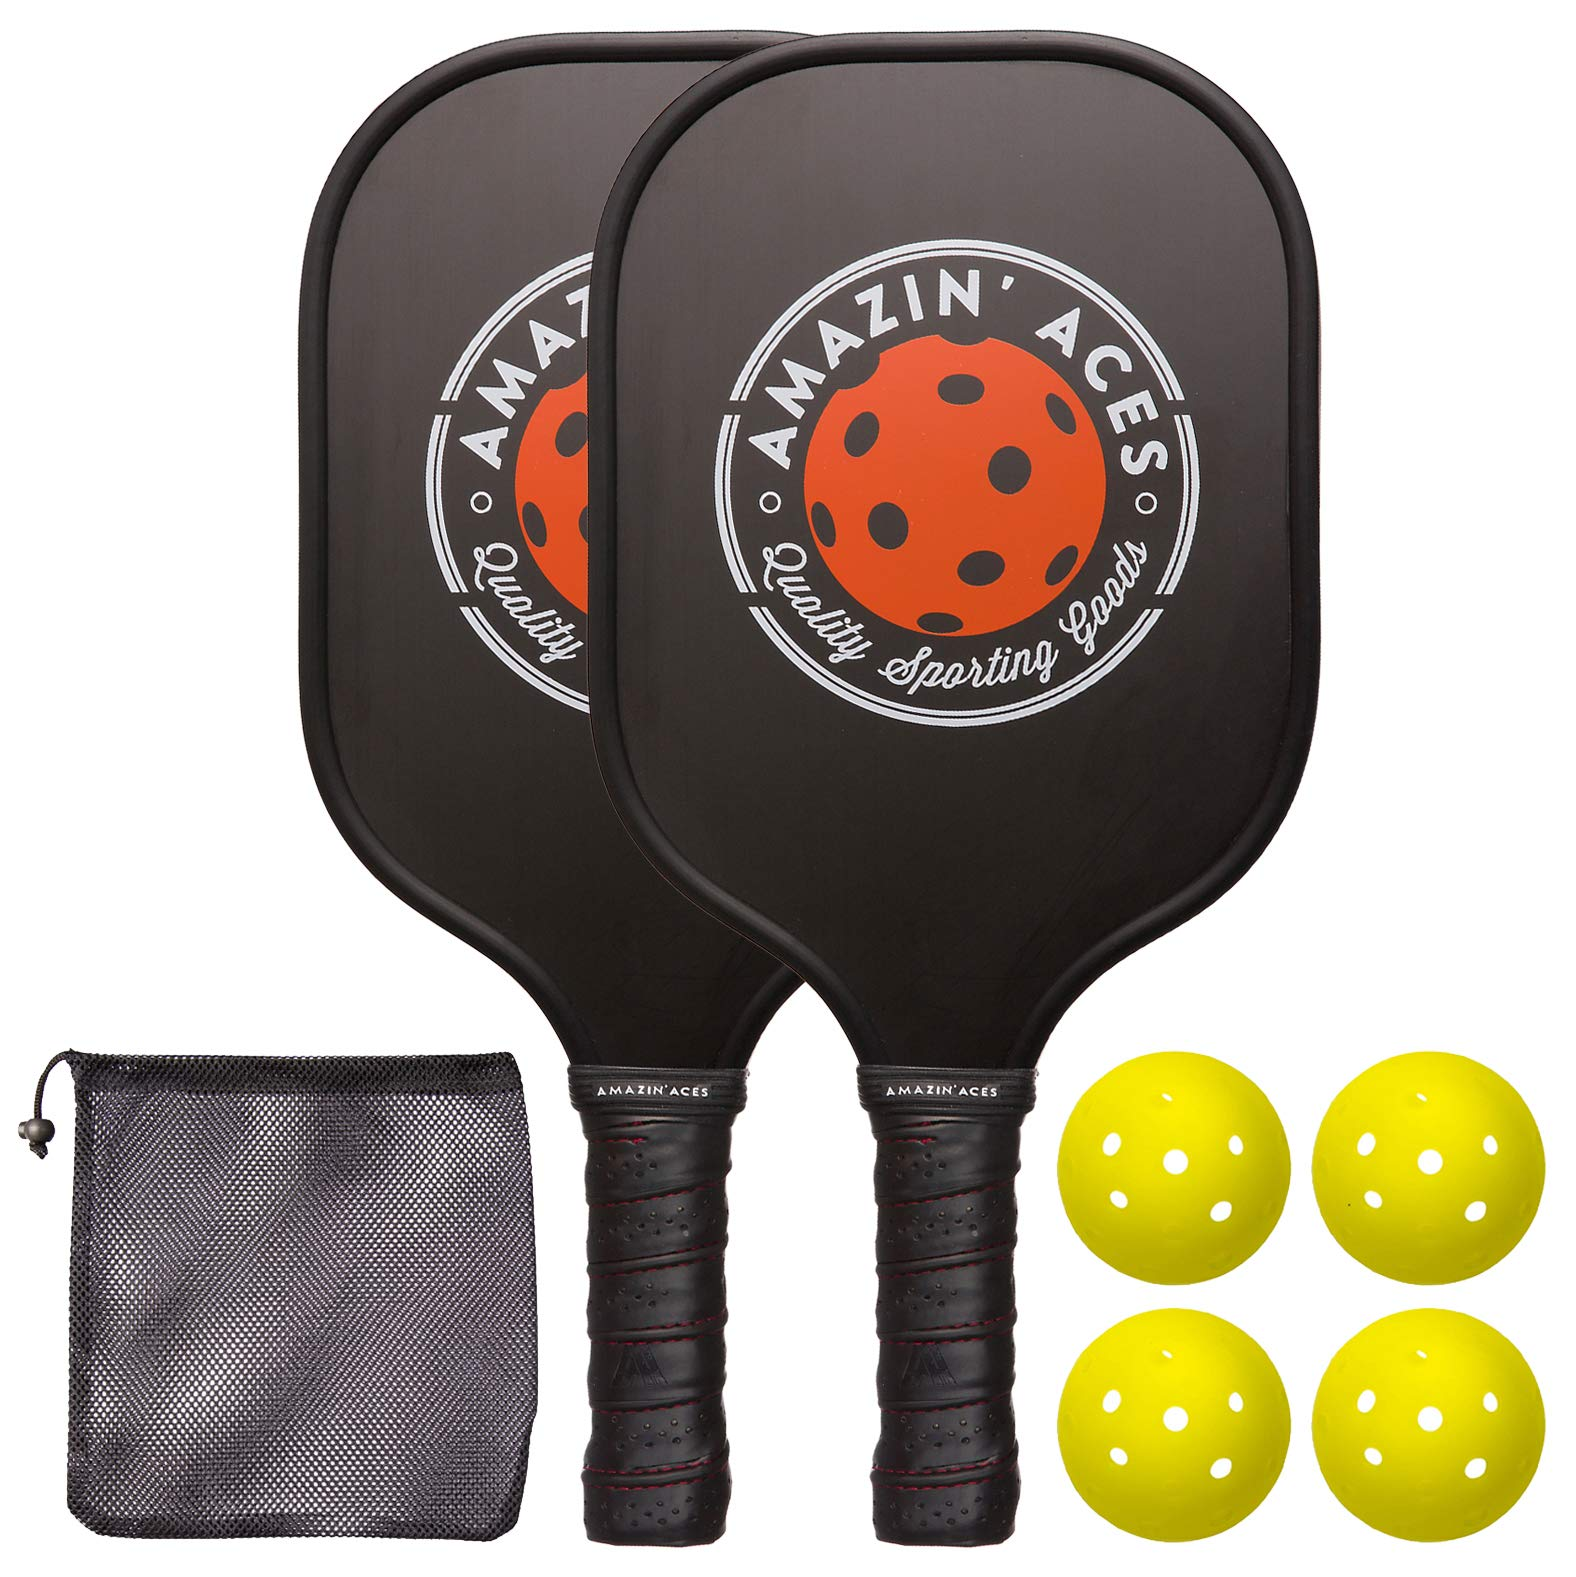 Amazin' Aces Pickleball Paddle Set | Pickleball Set Includes Two Graphite Pickleball Paddles + Four Balls + One Mesh Carry Bag | Premium Rackets Graphite Face & Polymer Honeycomb Core